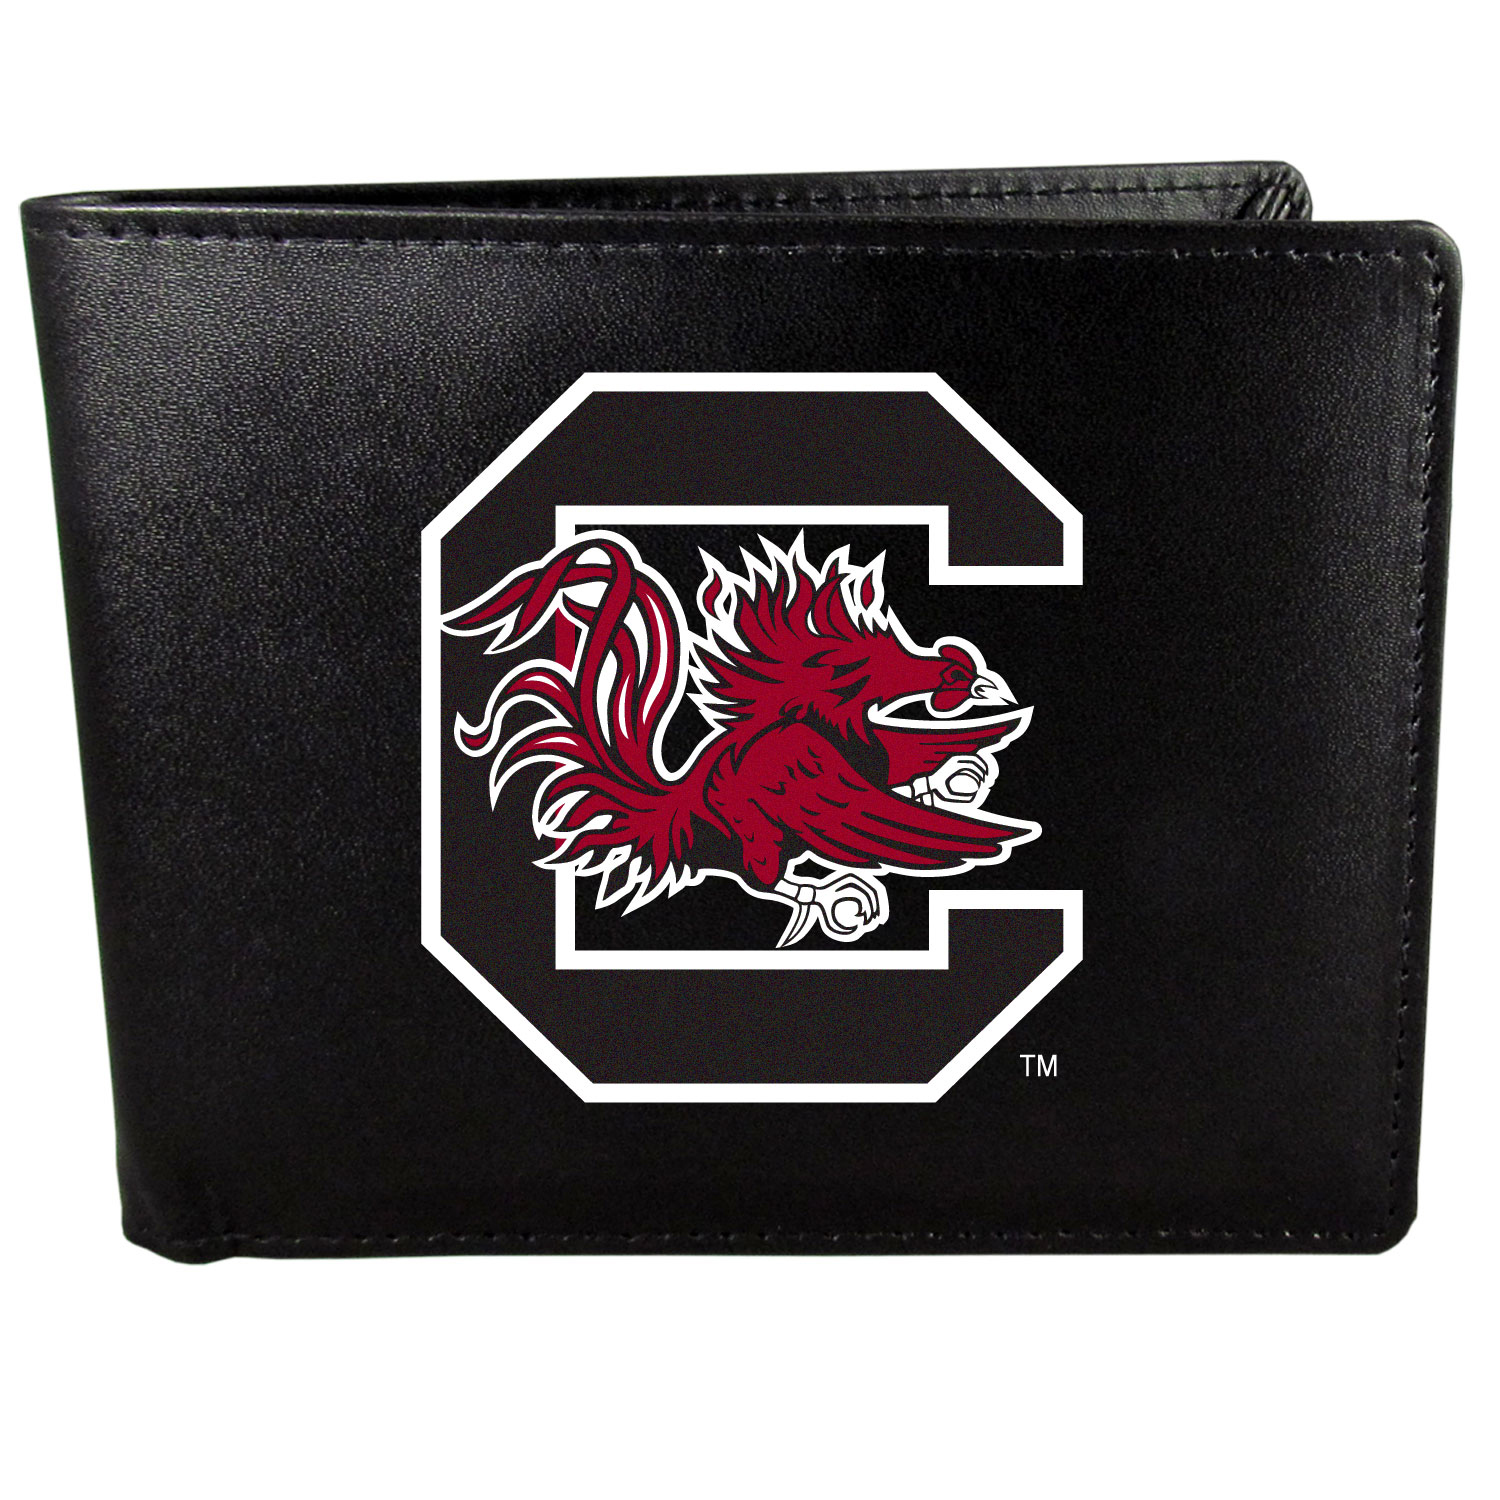 S. Carolina Gamecocks Leather Bi-fold Wallet, Large Logo - Our classic fine leather bi-fold wallet is meticulously crafted with genuine leather that will age beautifully so you will have a quality wallet for years to come. The wallet opens to a large, billfold pocket and numerous credit card slots and has a convenient windowed ID slot. The front of the wallet features an extra large S. Carolina Gamecocks printed logo.